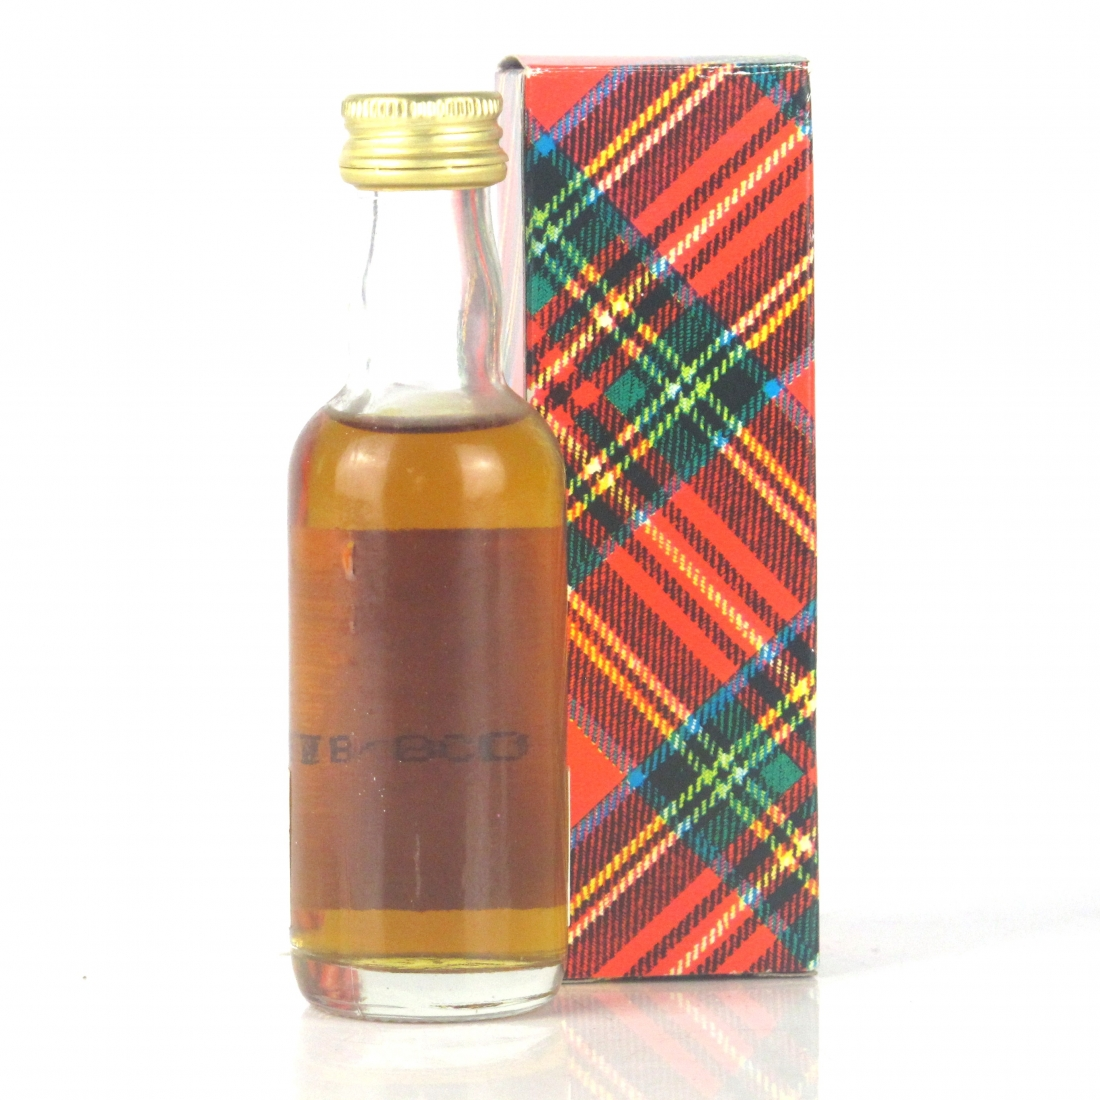 Highland Park 1983 Gordon and MacPhail Cask Strength Miniature 5cl